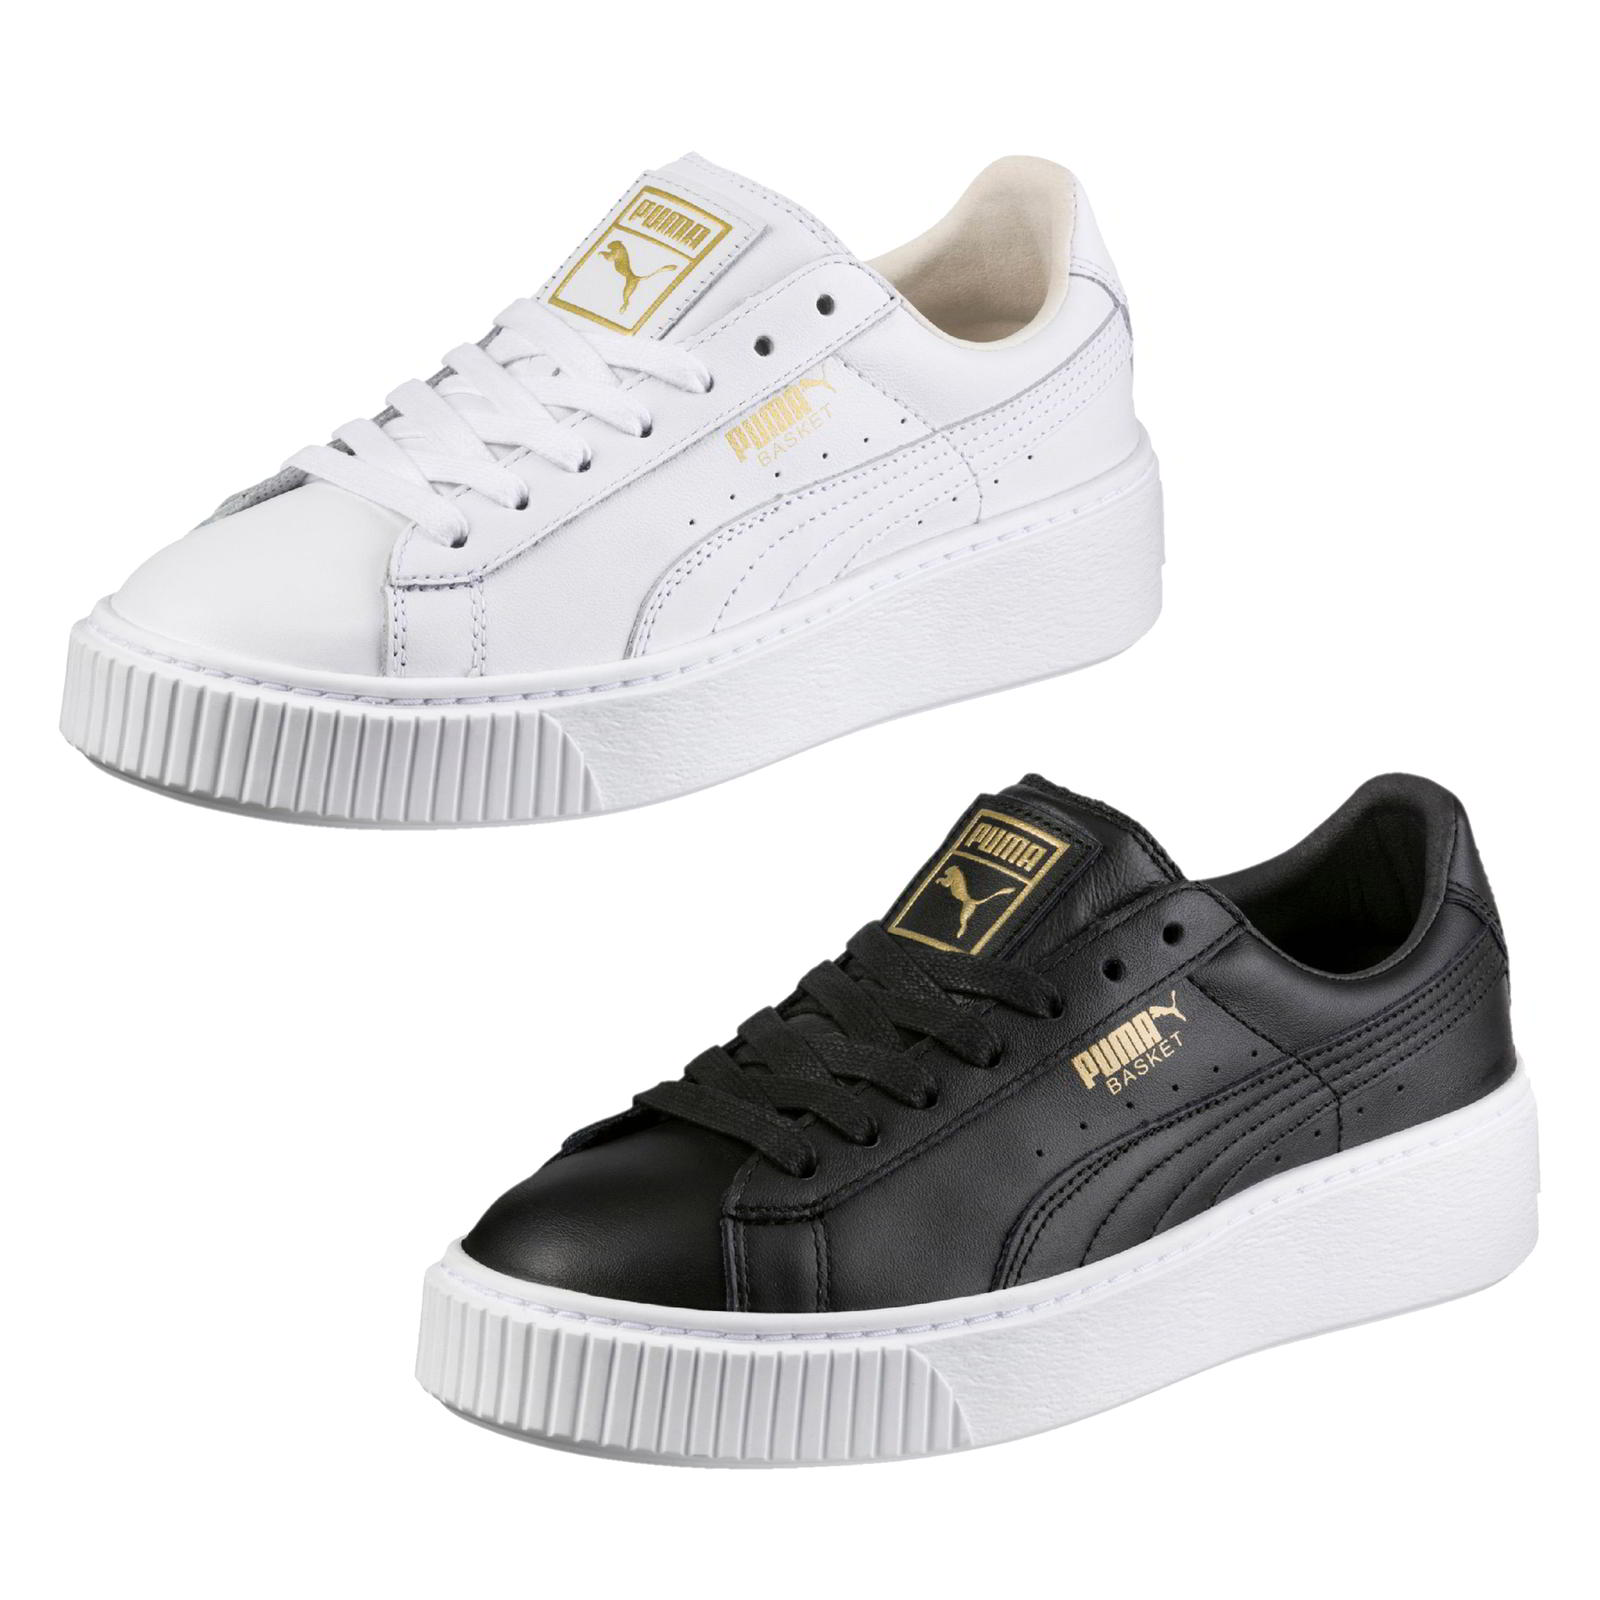 0212768f6c5c Details about Puma Basket Platform Womens Ladies Black White Gold Trainers  Shoes Size 4-8